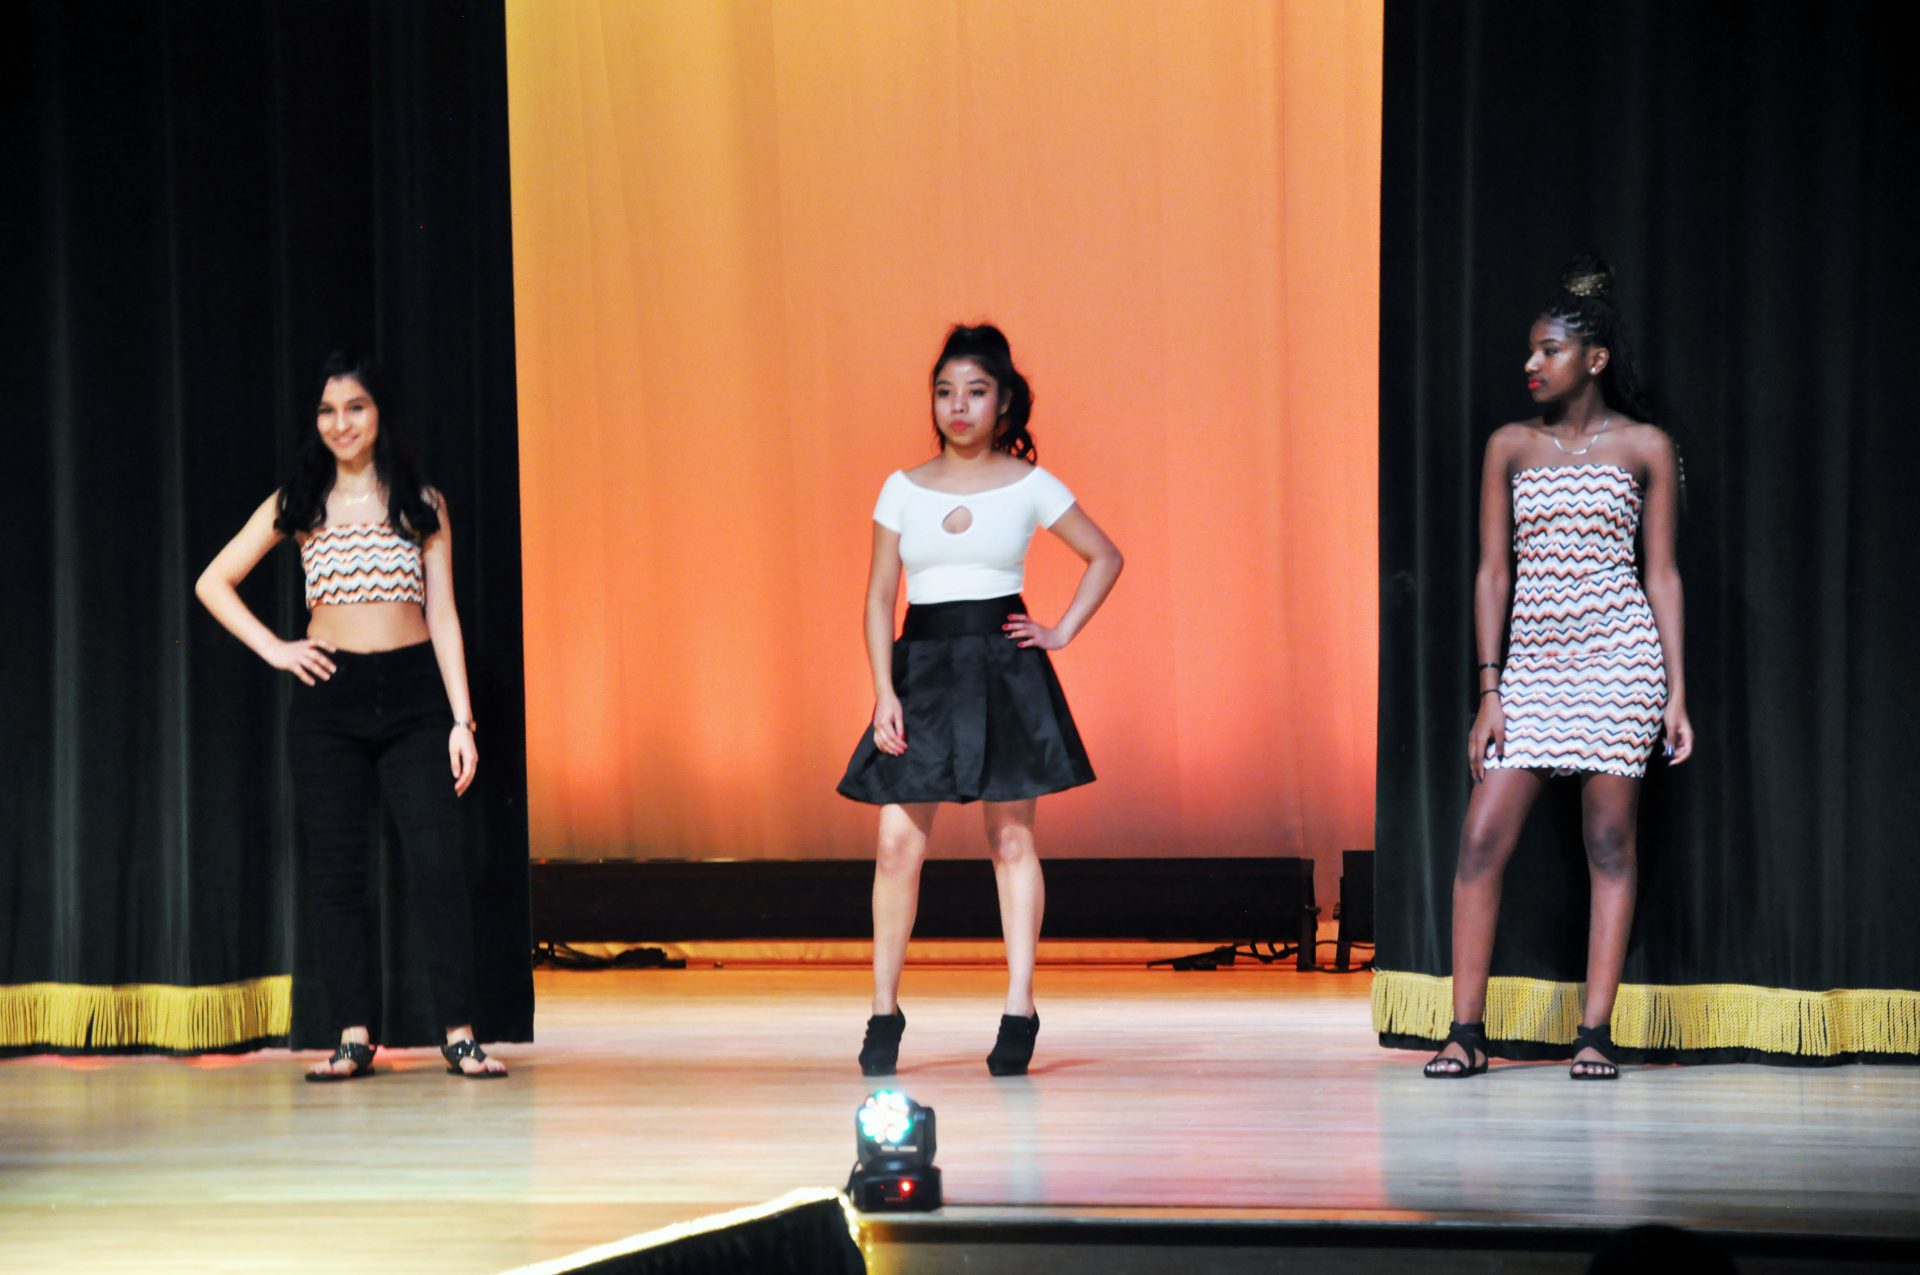 3 fashion show models posing